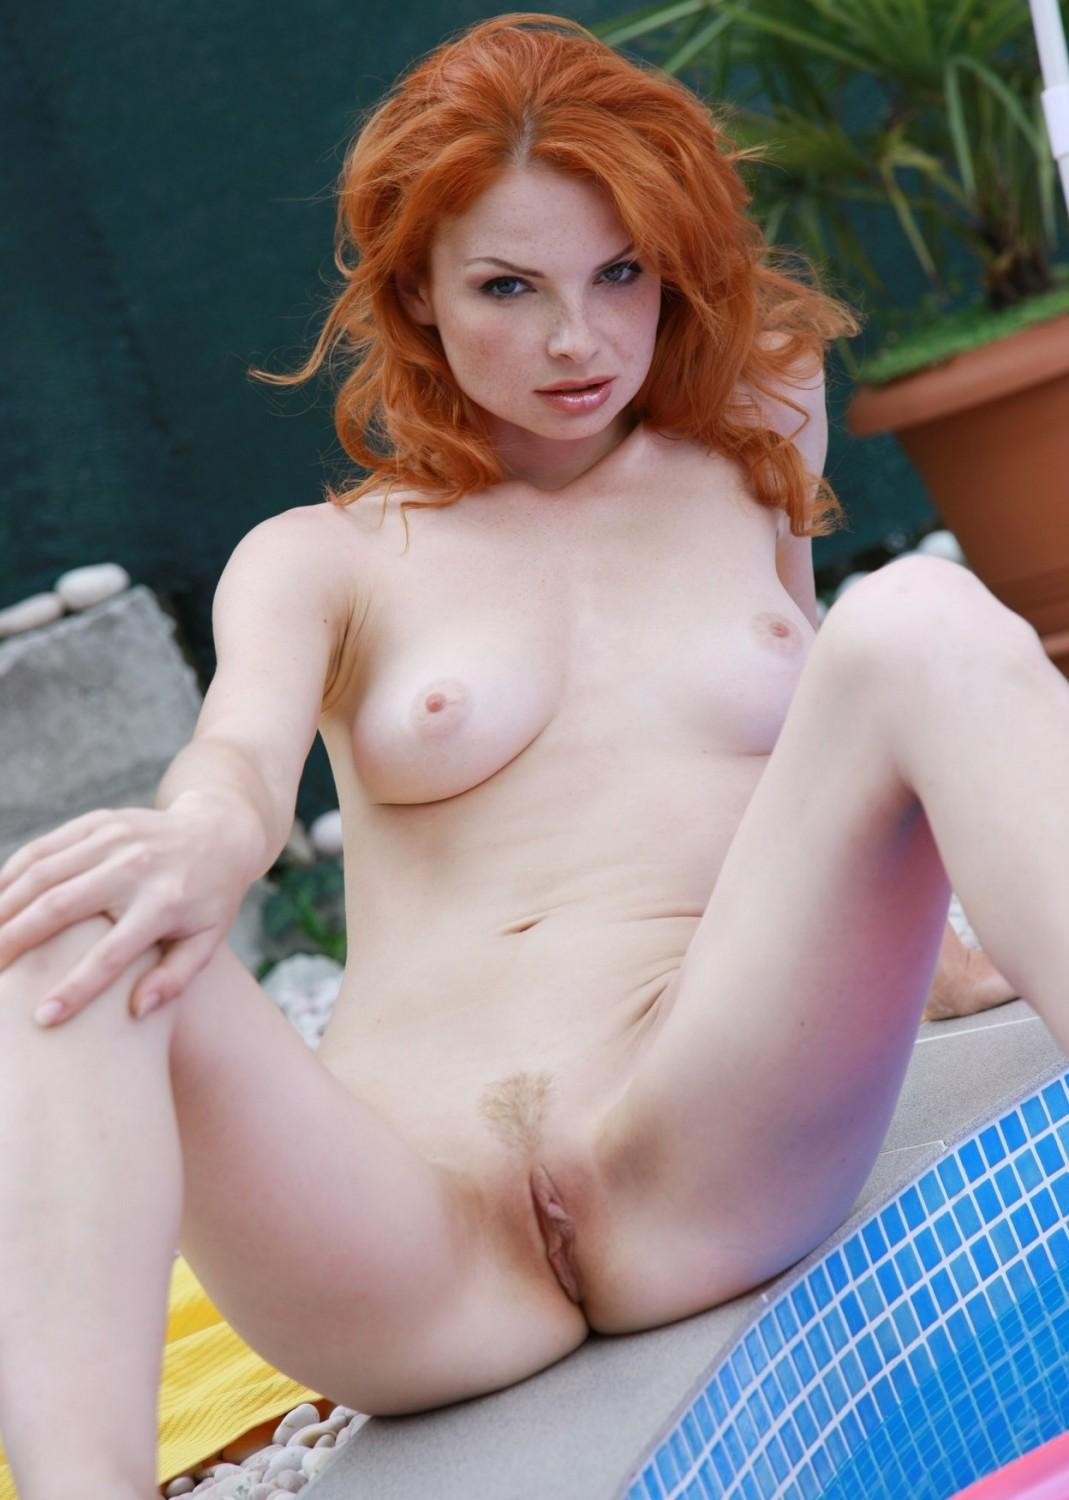 Red Headed Nude Girls